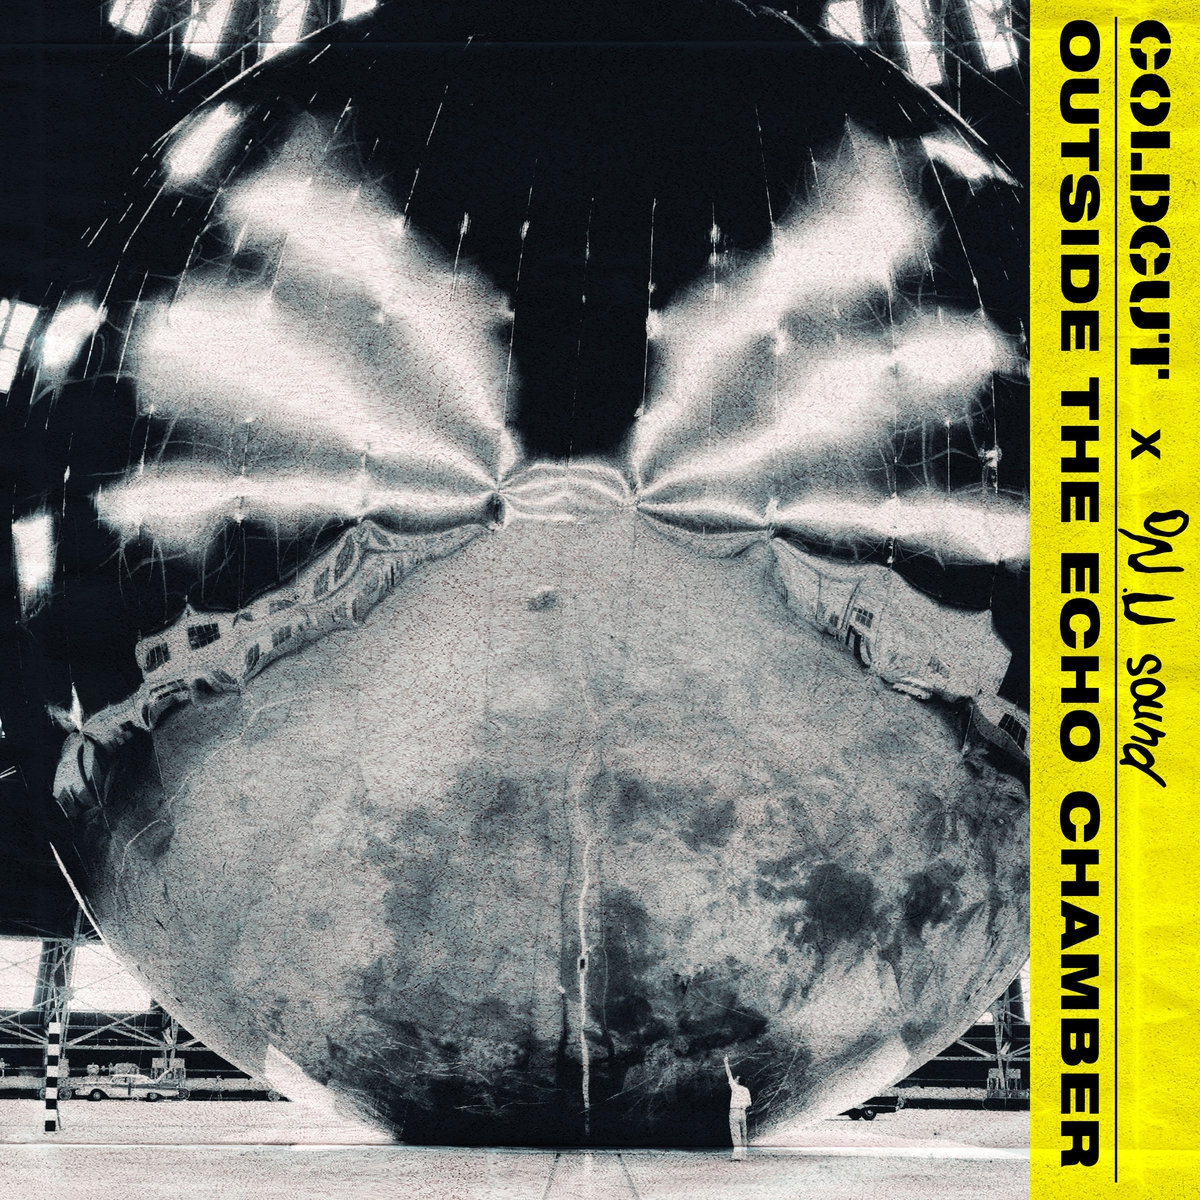 Coldcut x On-U Sound - Divide and Rule feat. Lee 'Scratch' Perry, Junior Reid and Elan (Mungo's Hi Fi Remix)